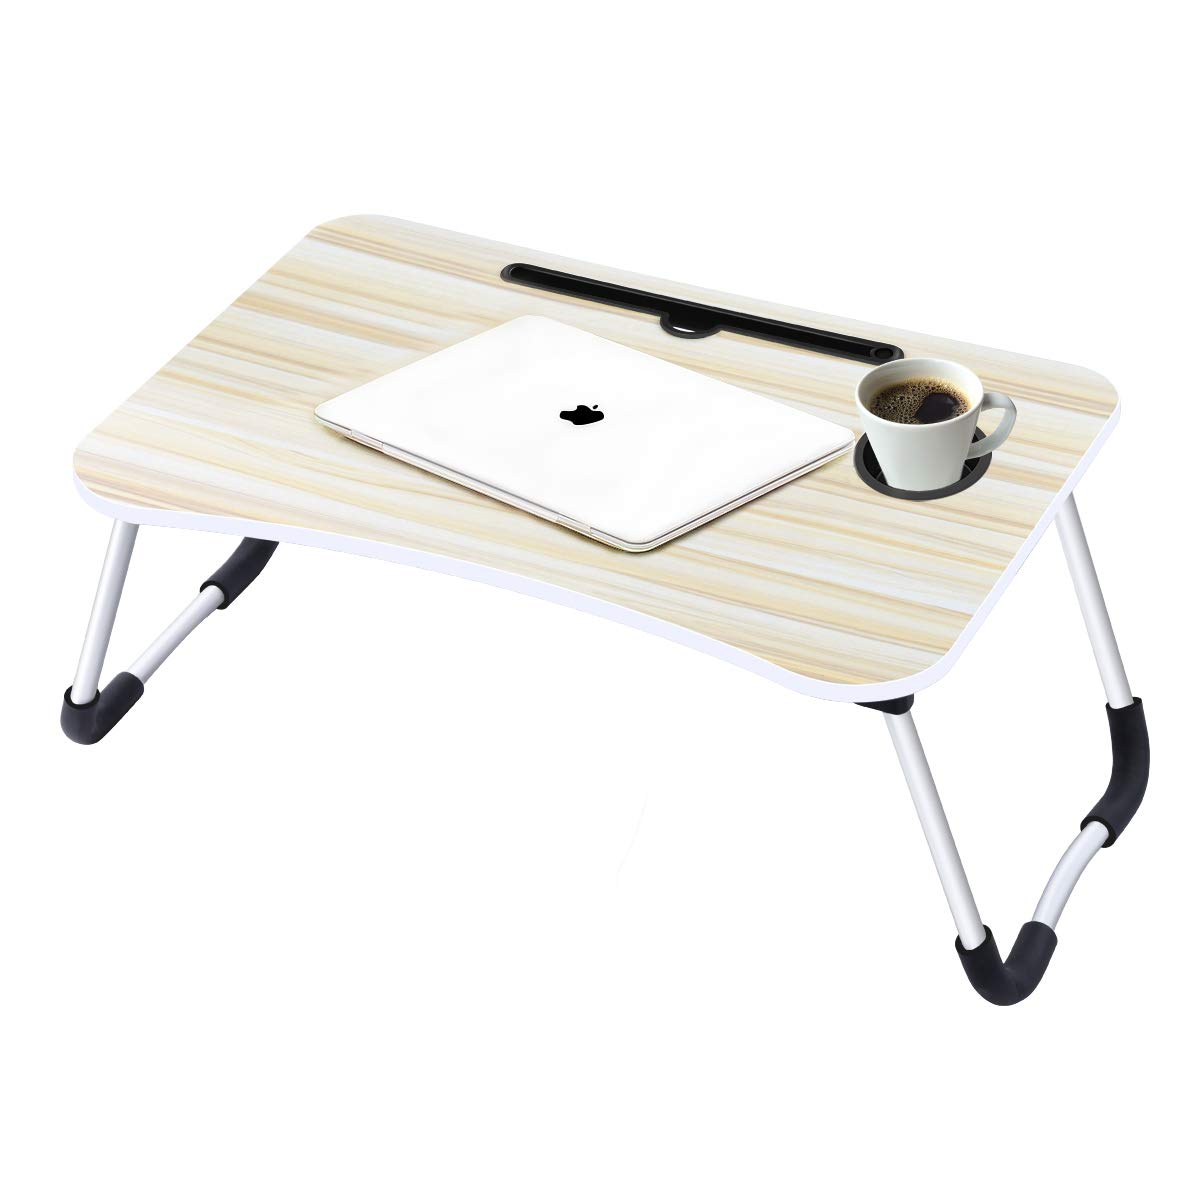 Laptop Desk,Laptop Bed Tray Table Large Foldable Laptop Notebook Stand Desk with Ipad and Cup Holder Perfect for Eating Breakfast, Reading Book, Working,Watching Movie on Bed/Couch/Sofa (Beige) by Suninhome